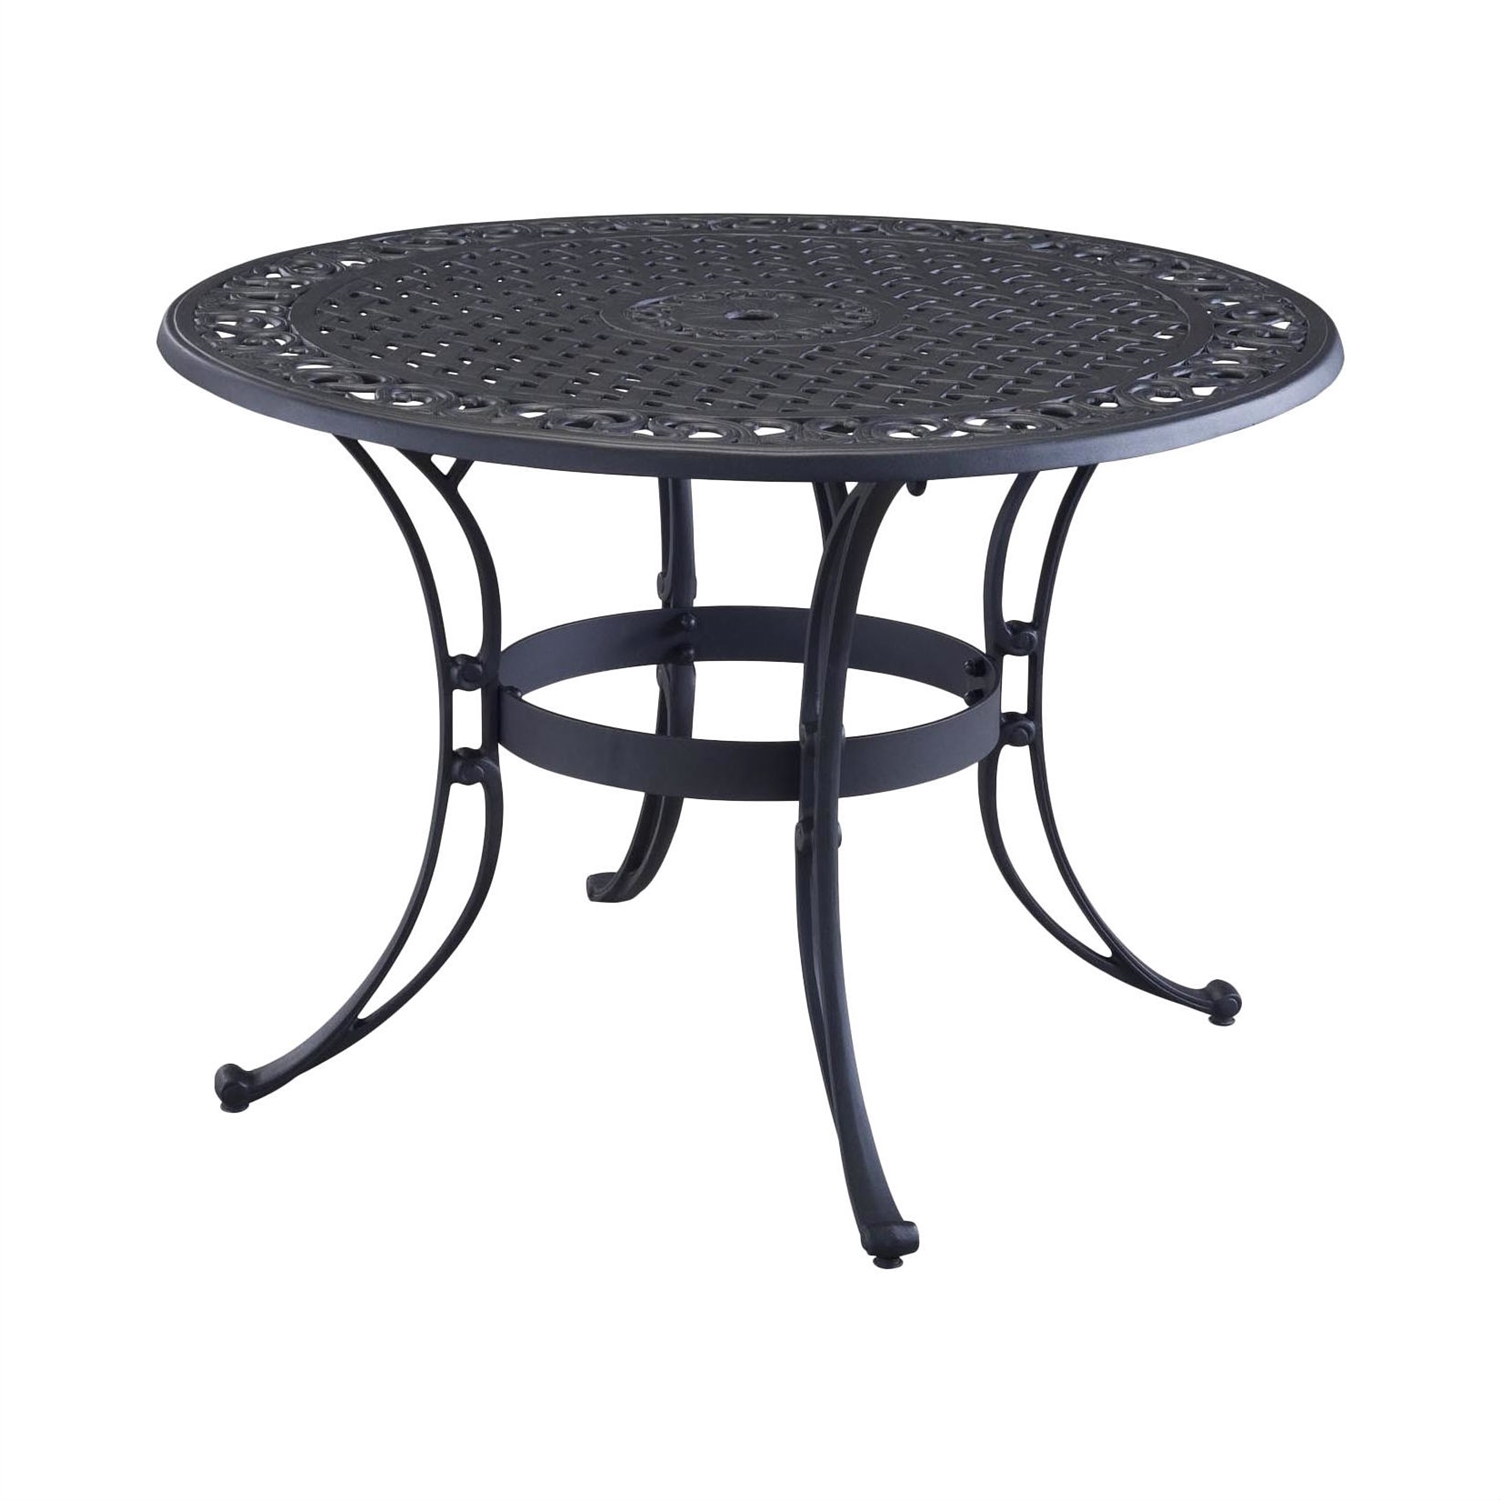 patio side table metal maribointelligentsolutionsco square outdoor round modern ideas wrought iron accent cast glass replacement tables plans retro designer furniture steel and